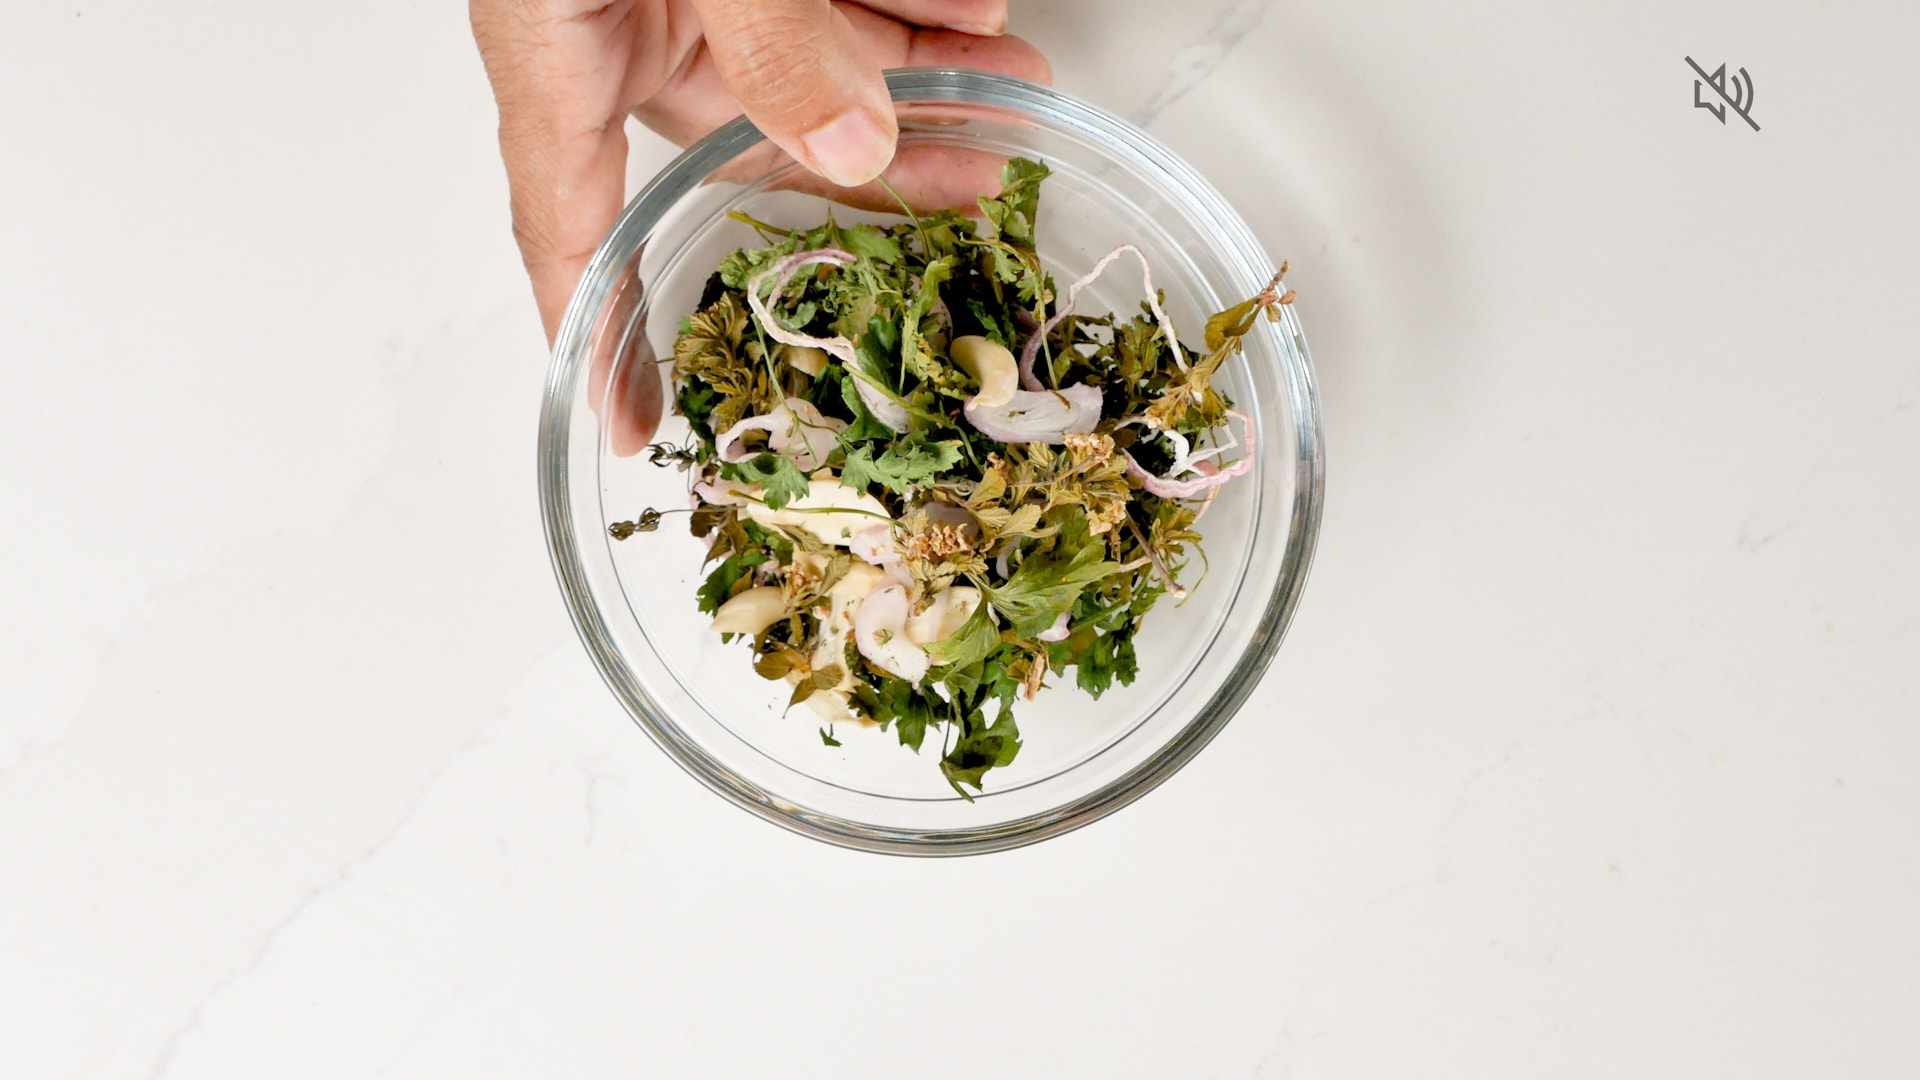 Leaves in a bowl